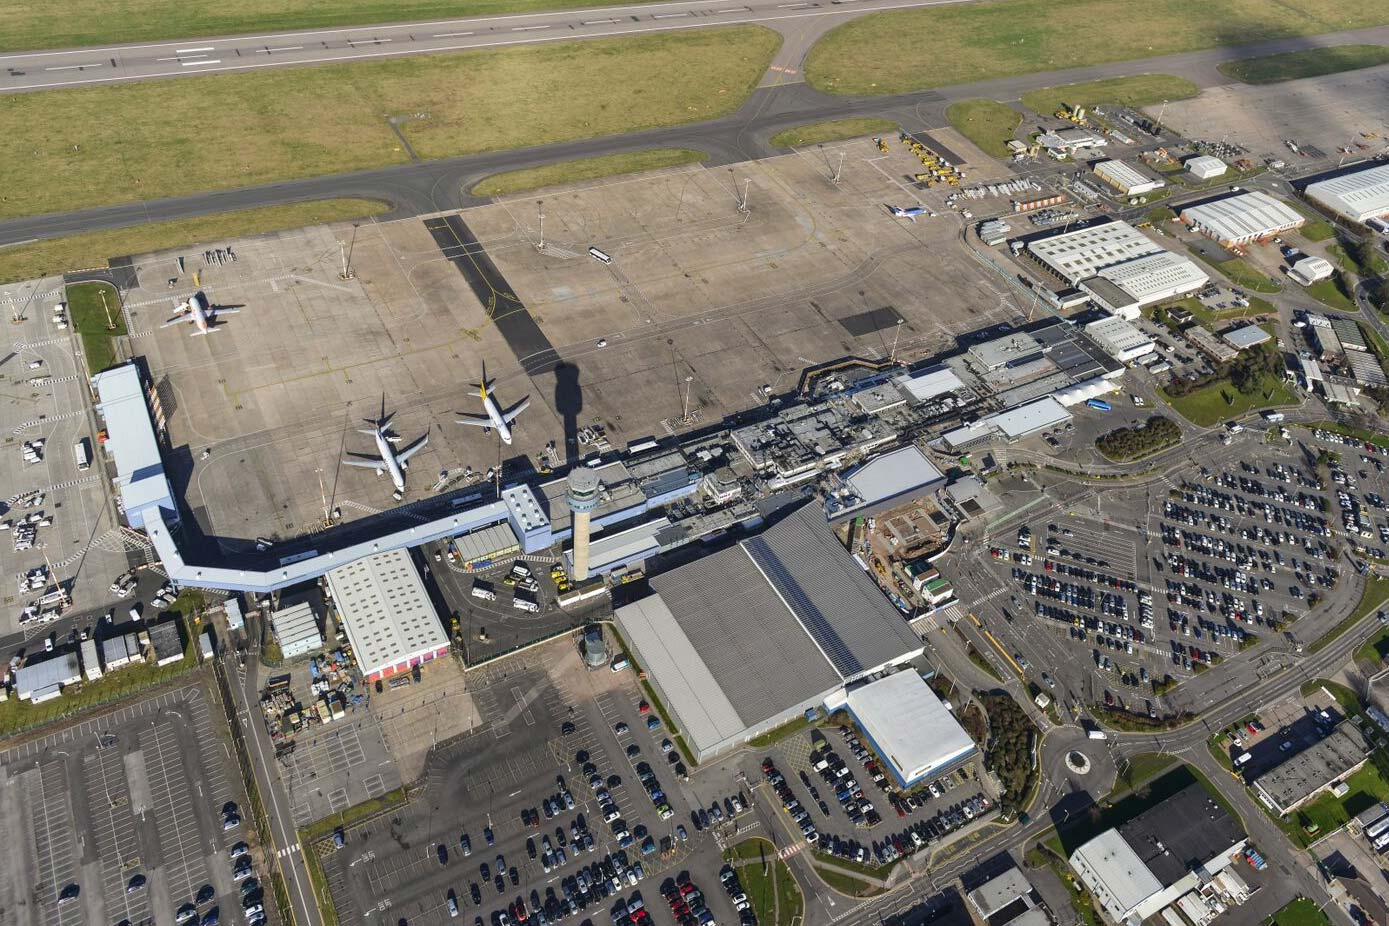 Sage Roofing worked with East Midlands Airport